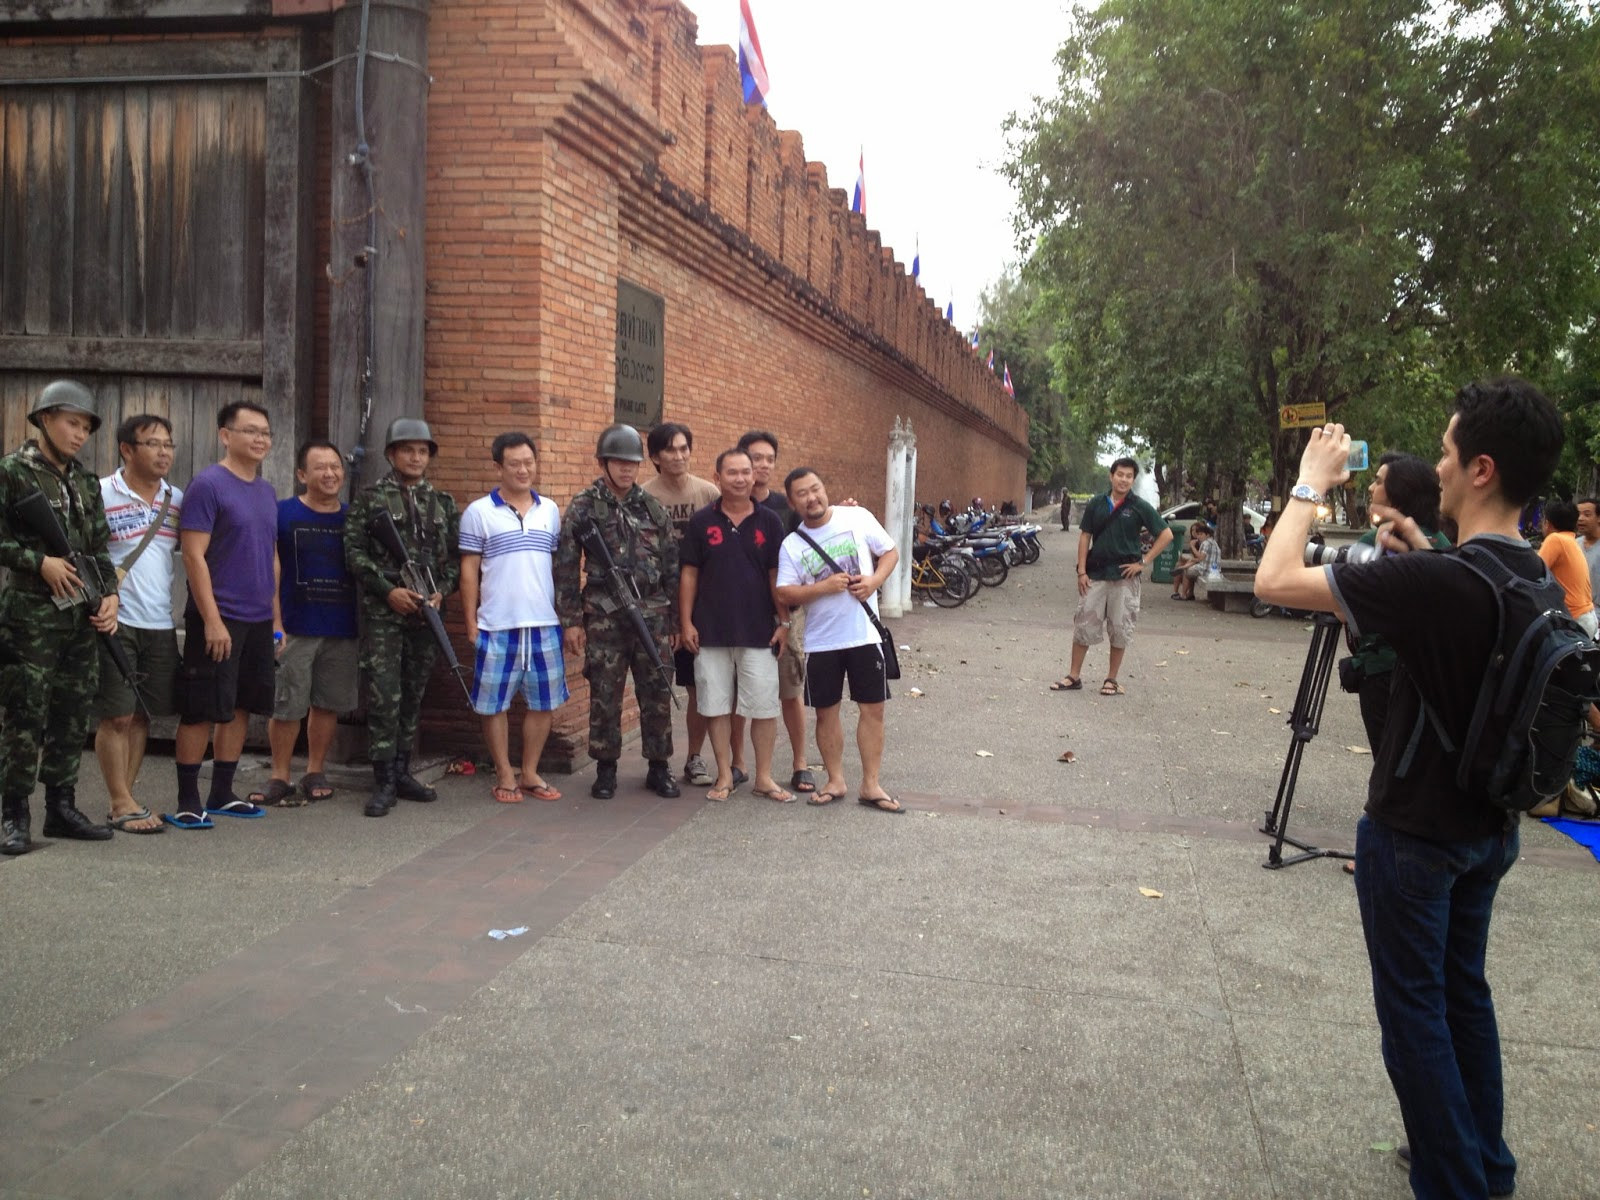 Chiang Mai - Tourists love taking pictures with the Royal Thai Army